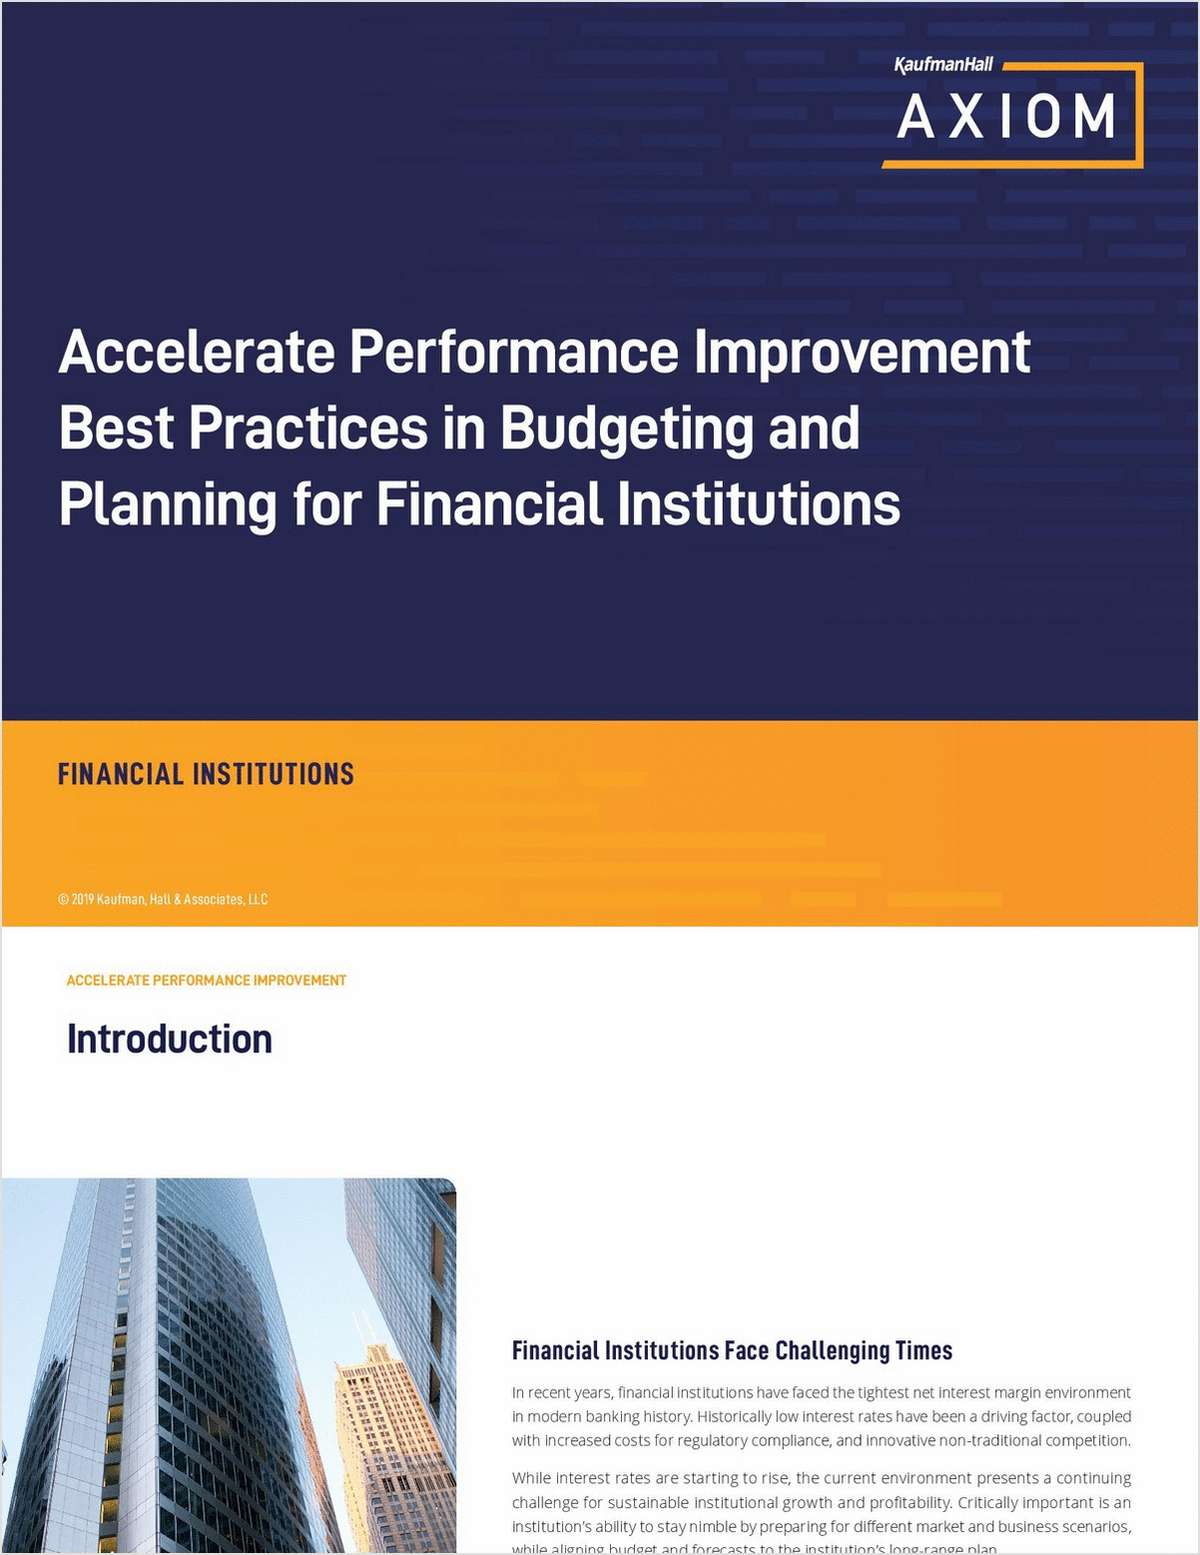 Accelerate Performance Improvement -- Best Practices in Budgeting and Planning